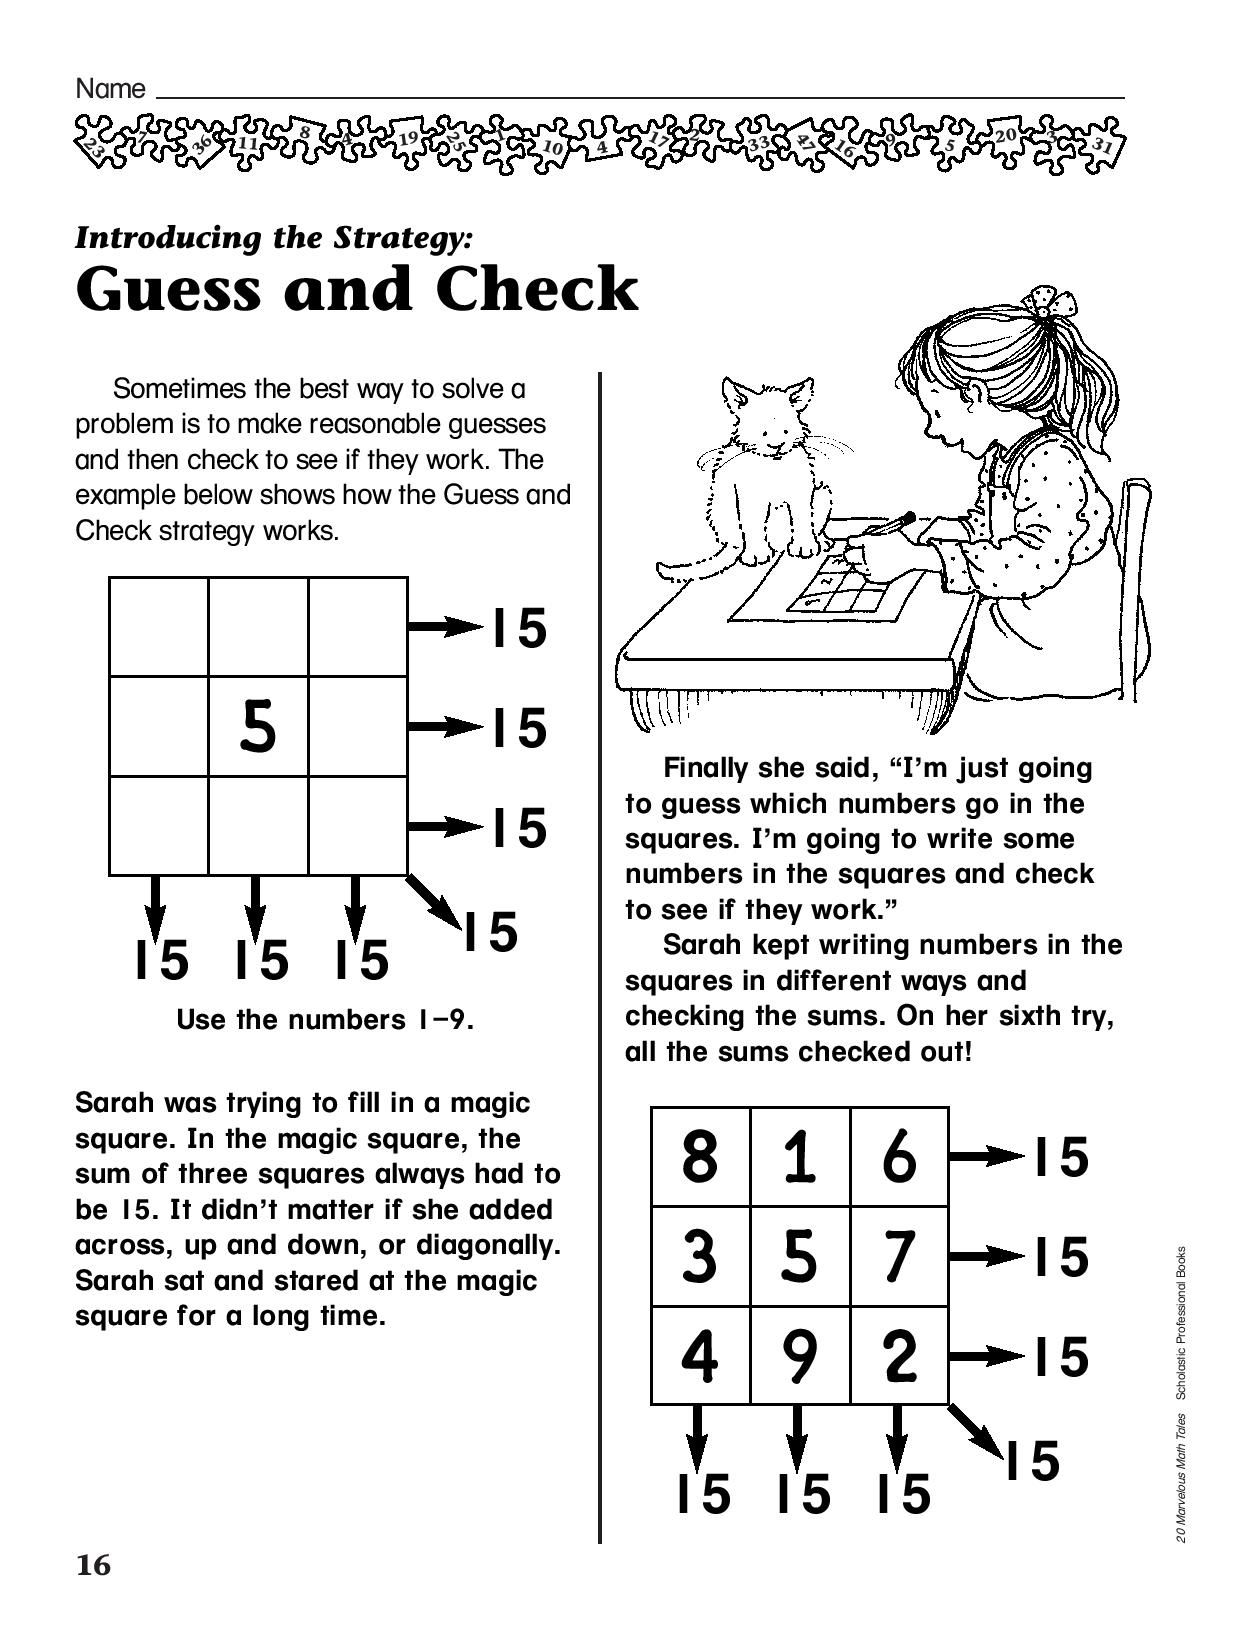 Help Your Child Learn How To Make Reasonable Guesses With Math Problems Ages 6 7